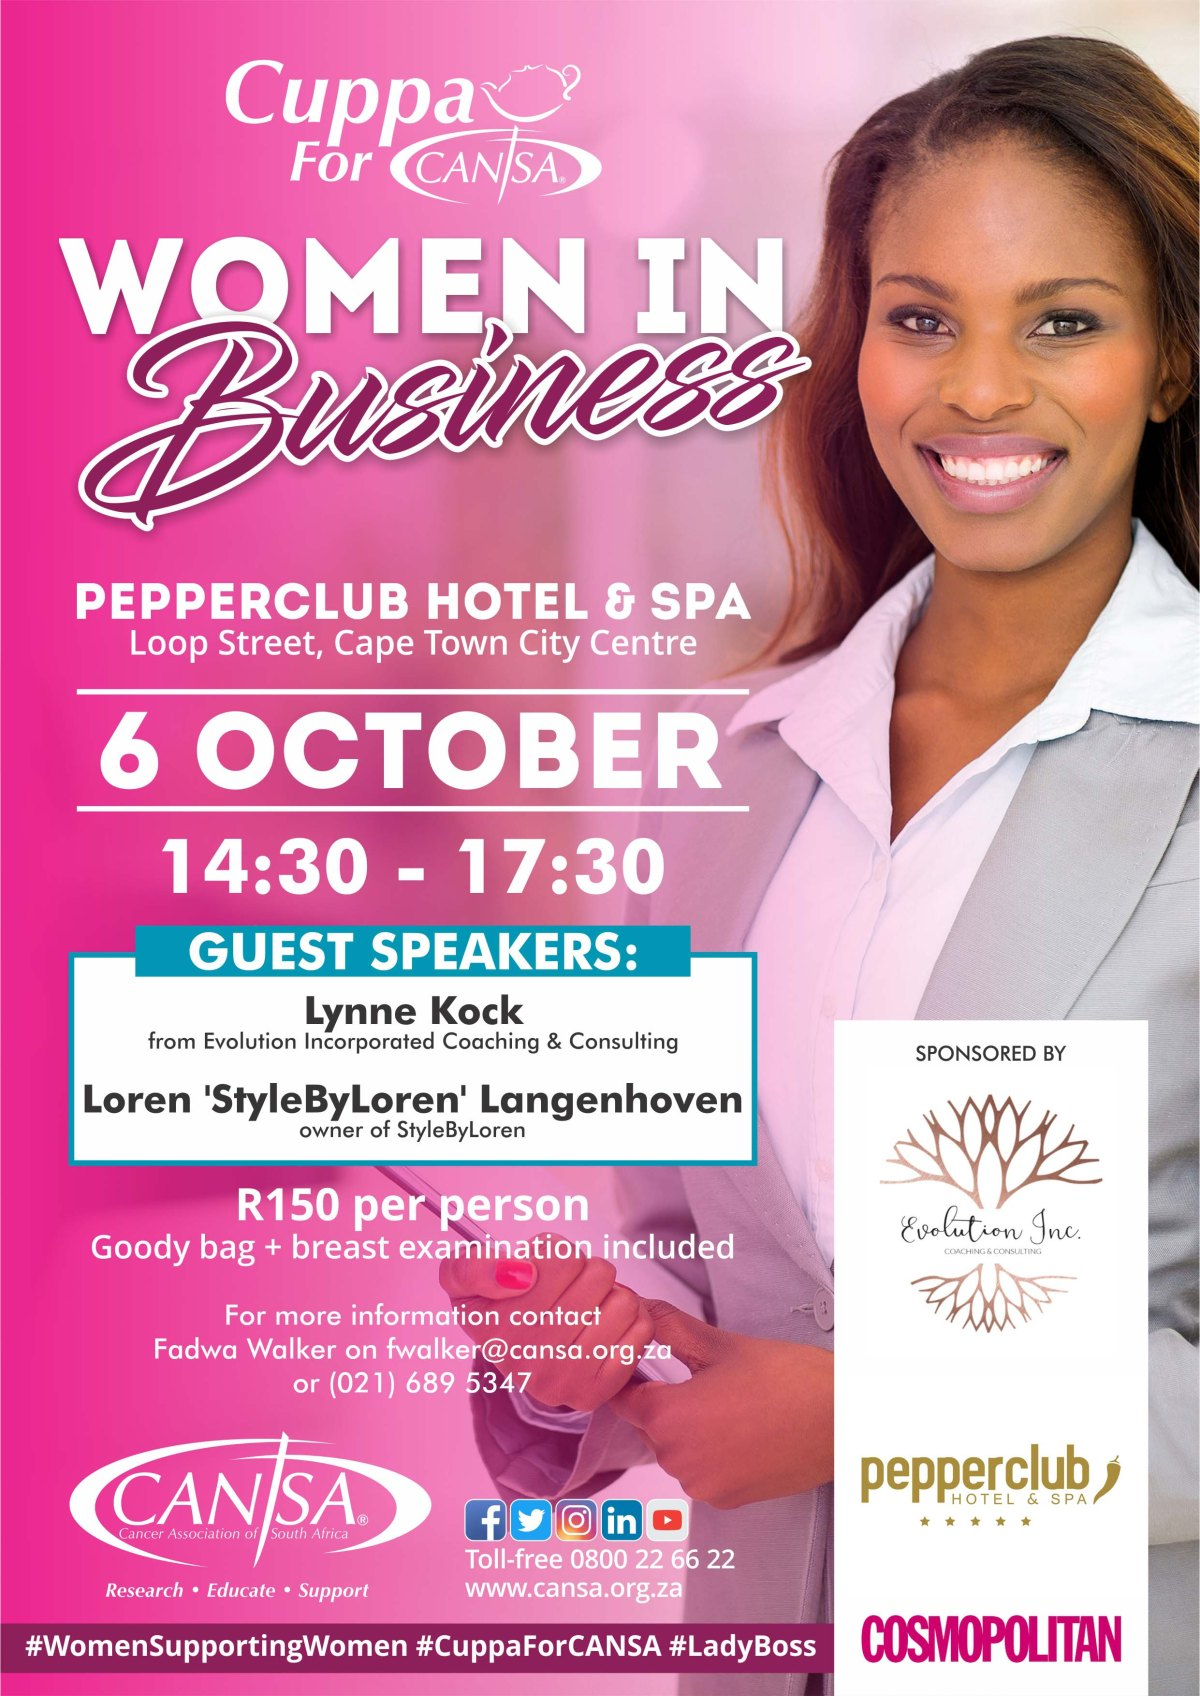 Cuppa For CANSA Women in Business - 6 October